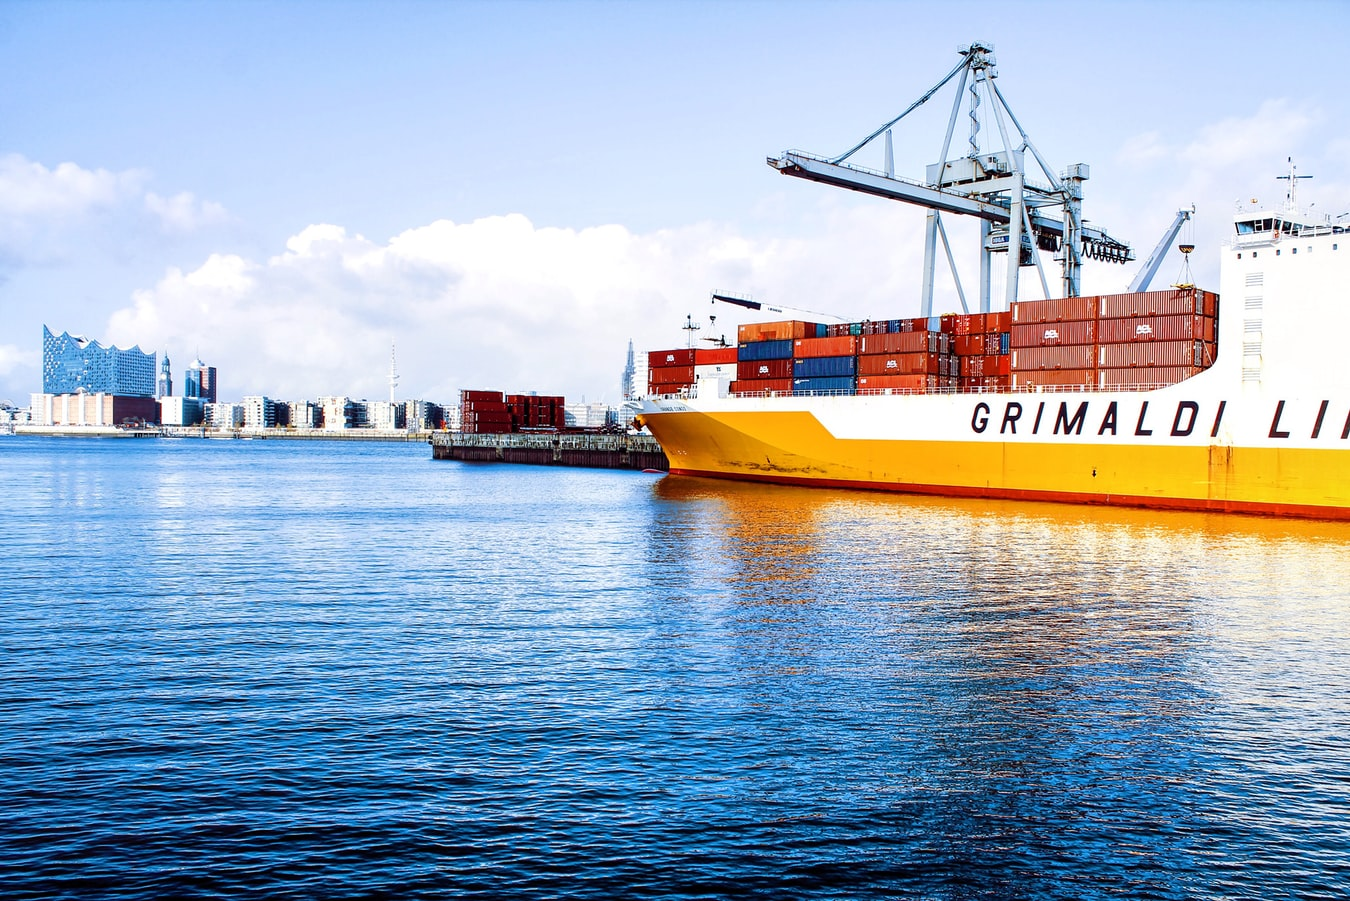 IMO, Global Trade, Ocean Freight, and Freight Tech